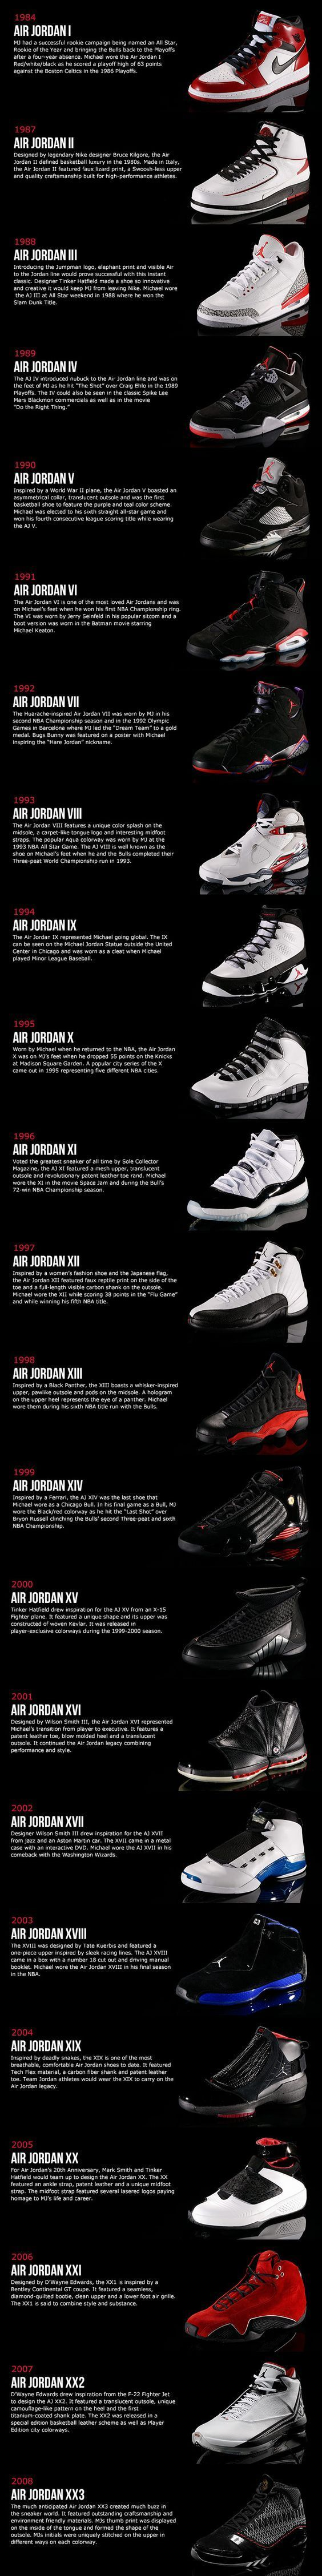 big sale a6d4a 69ee6 History of Air Jordan Shoes. Air Jordan is a brand of basketball footwear  and athletic clothing produced by Nike and endorsed and created for Chicago  Bulls ...